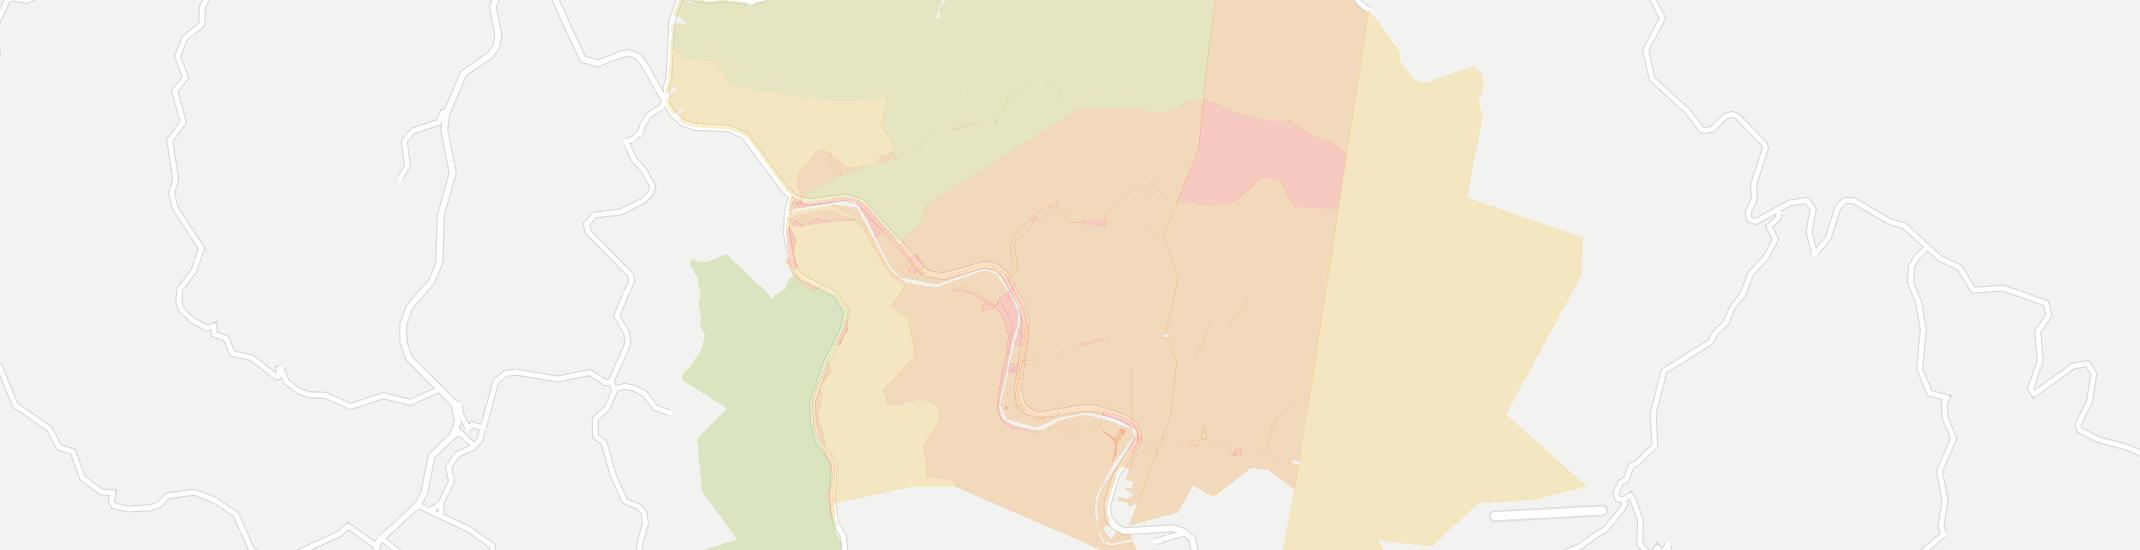 Ivel Internet Competition Map. Click for interactive map.